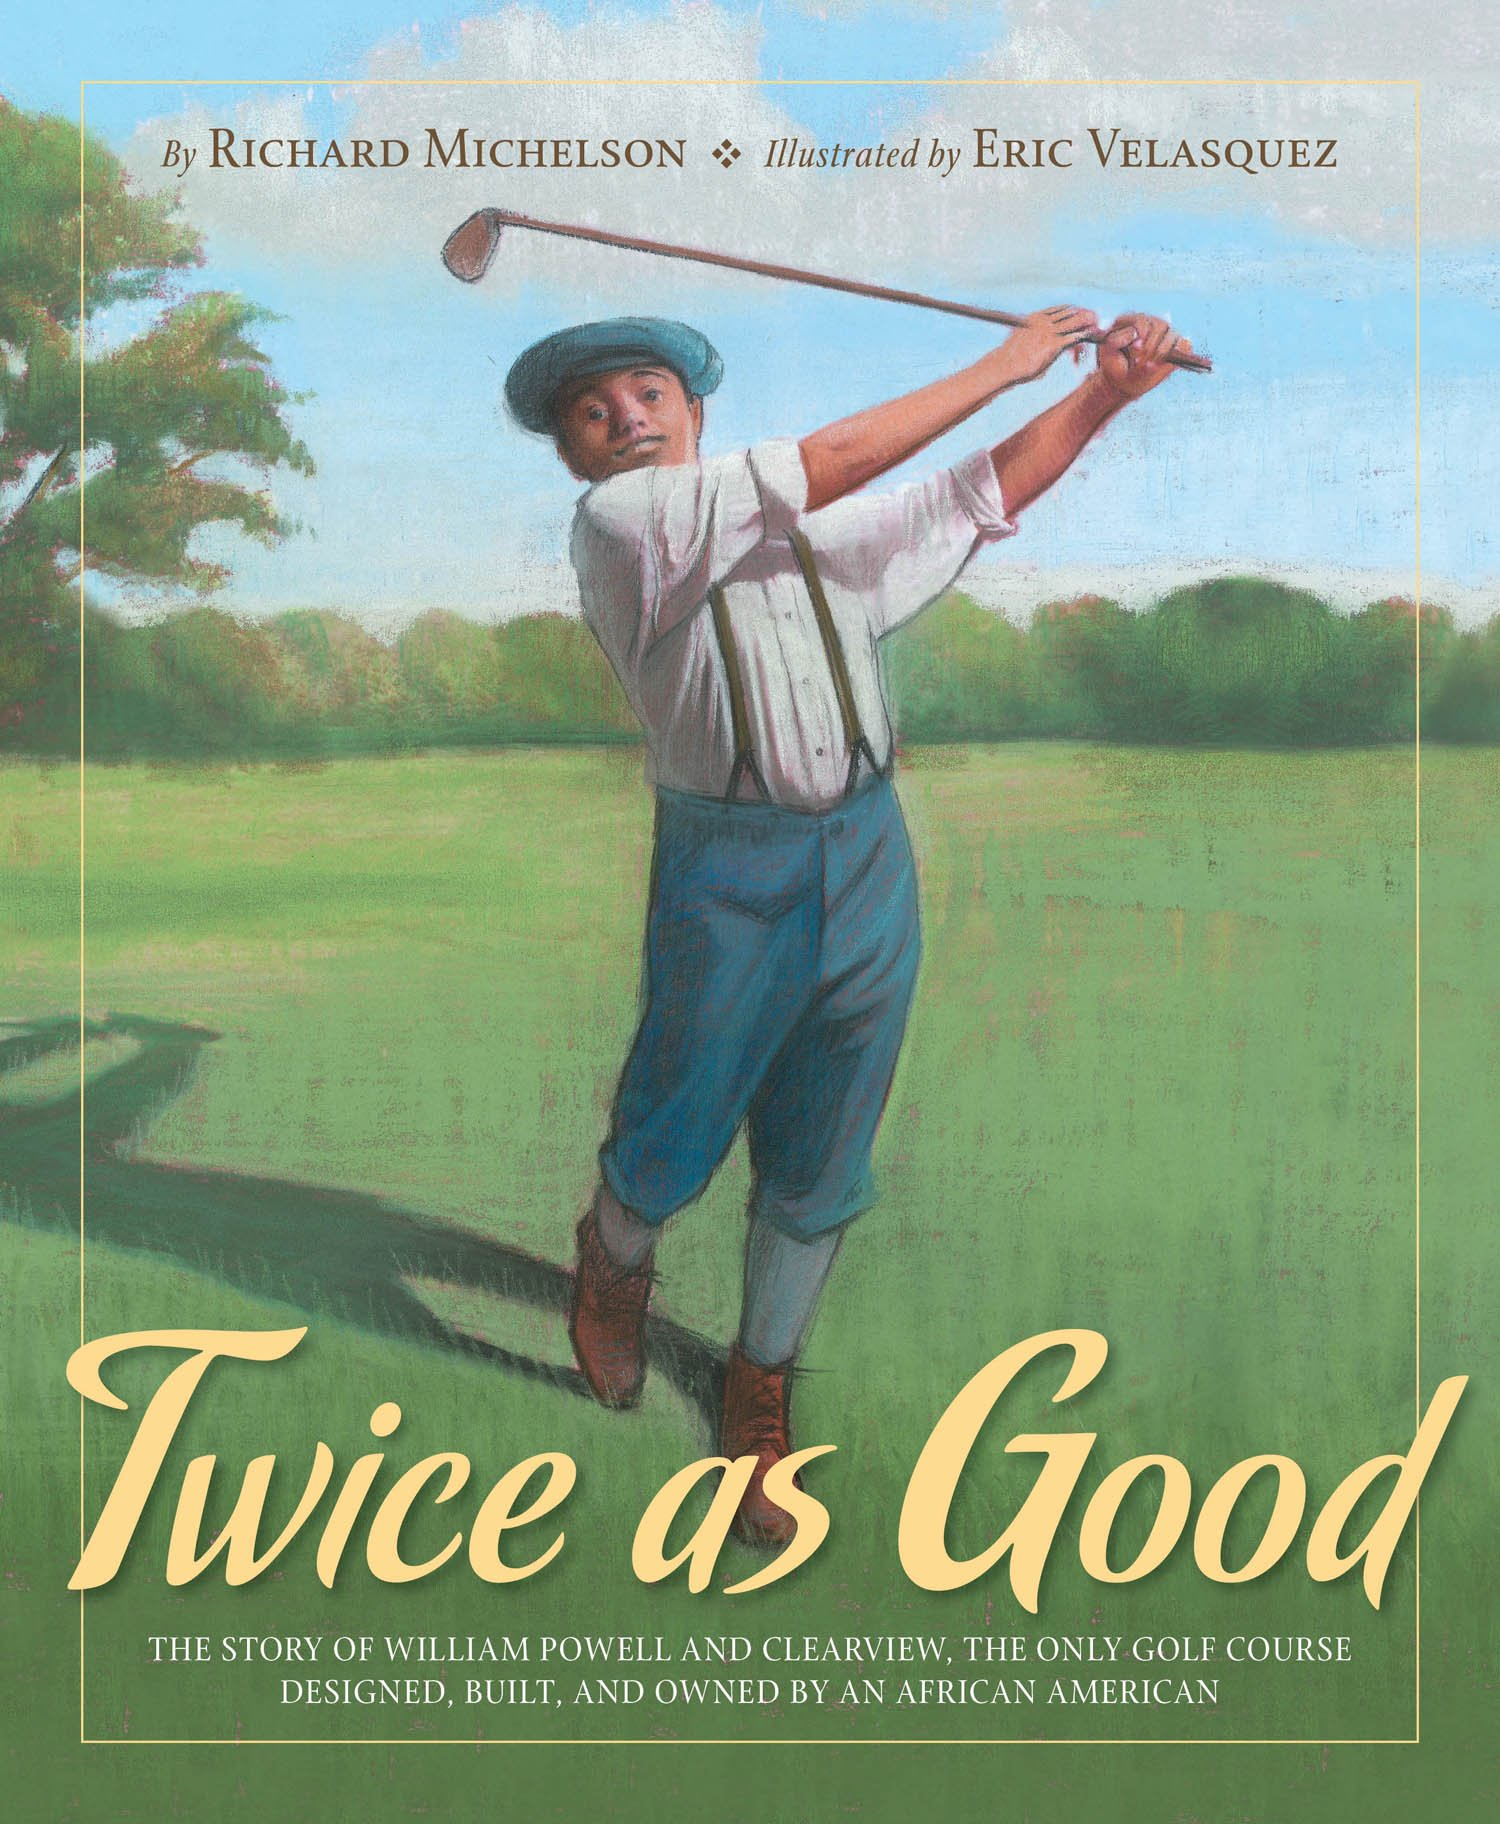 Twice as Good: The Story of William Powell and Clearview, the Only Golf Course Designed, Built, and Owned by an African American